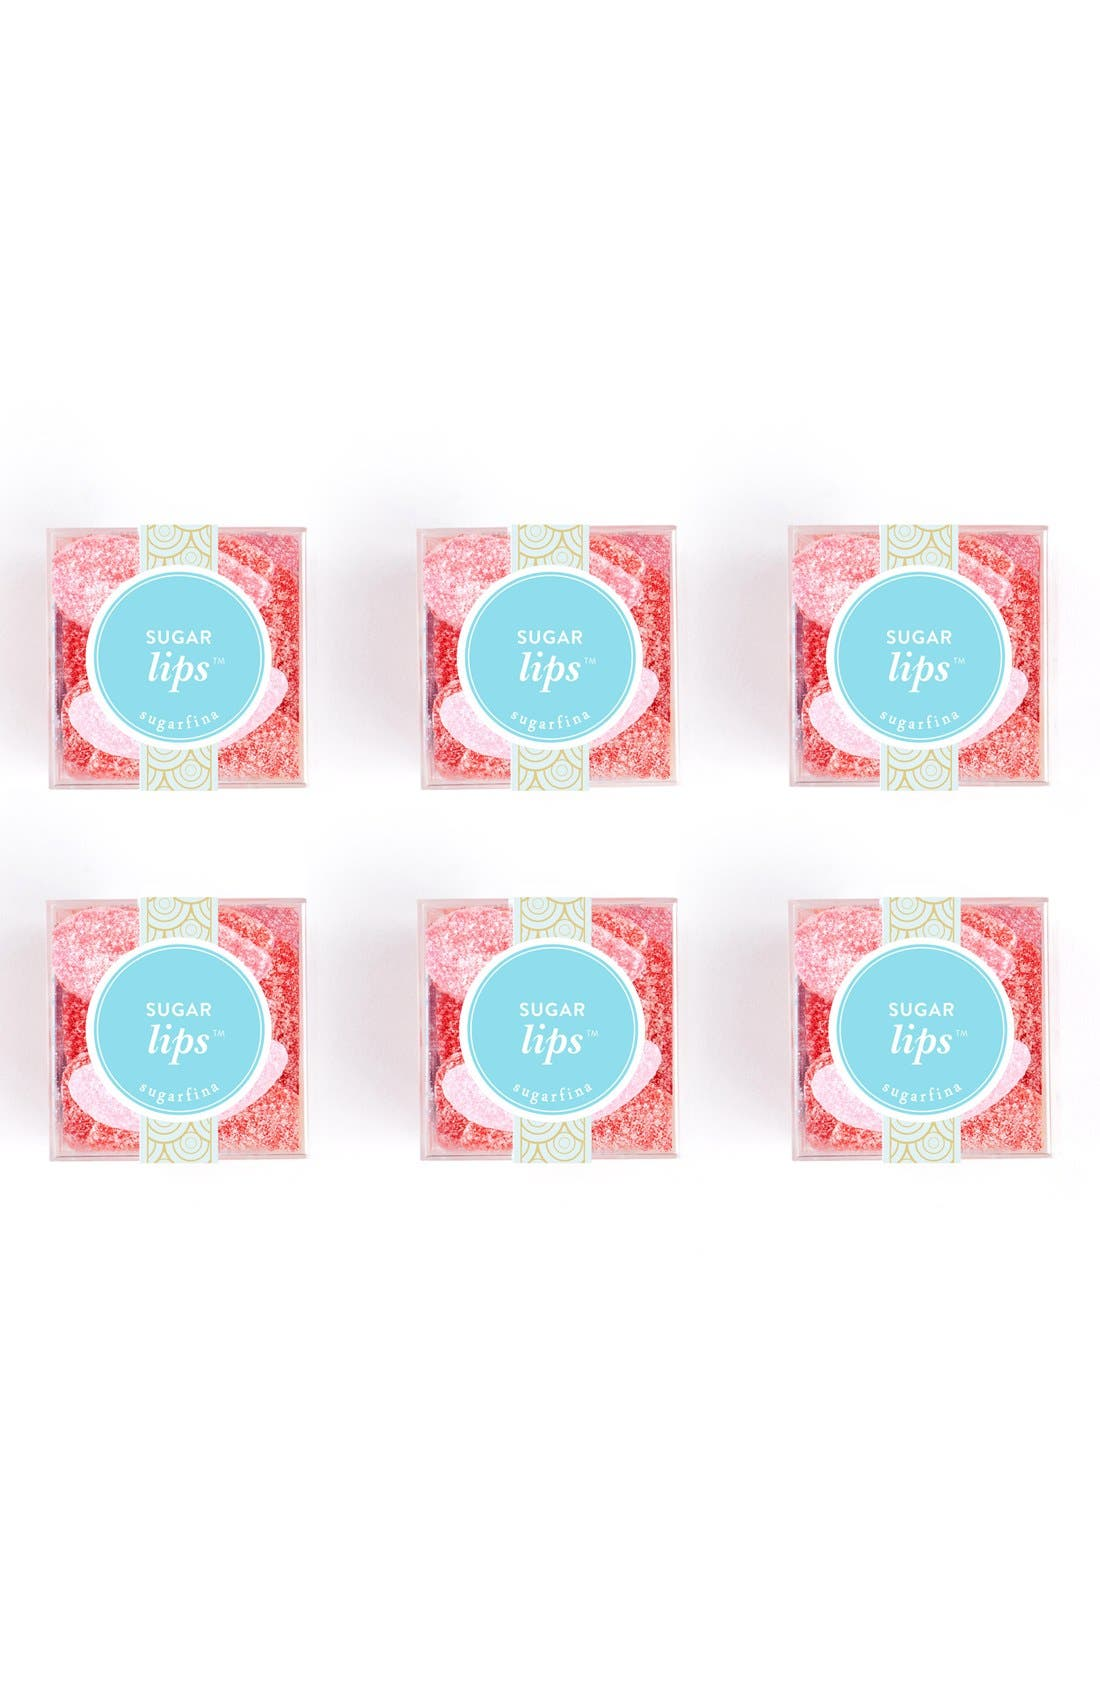 Alternate Image 1 Selected - Sugarfina Sugar Lips Set of 6 Party Pack